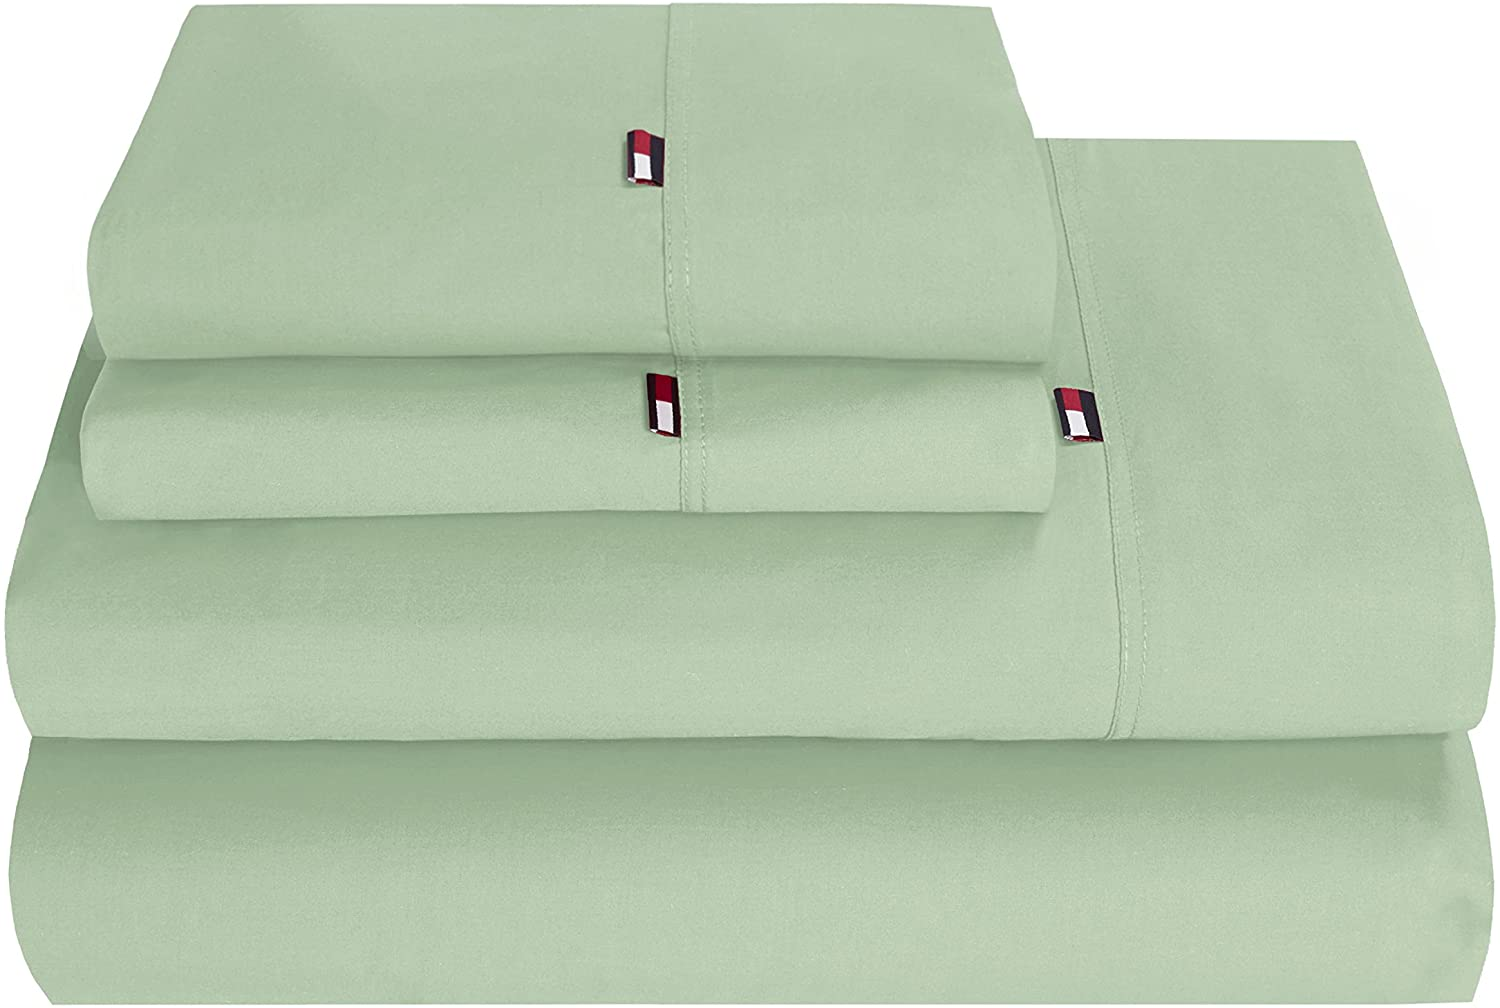 Tommy Hilfiger TH Signature Seagrass T Sheet Set Twin